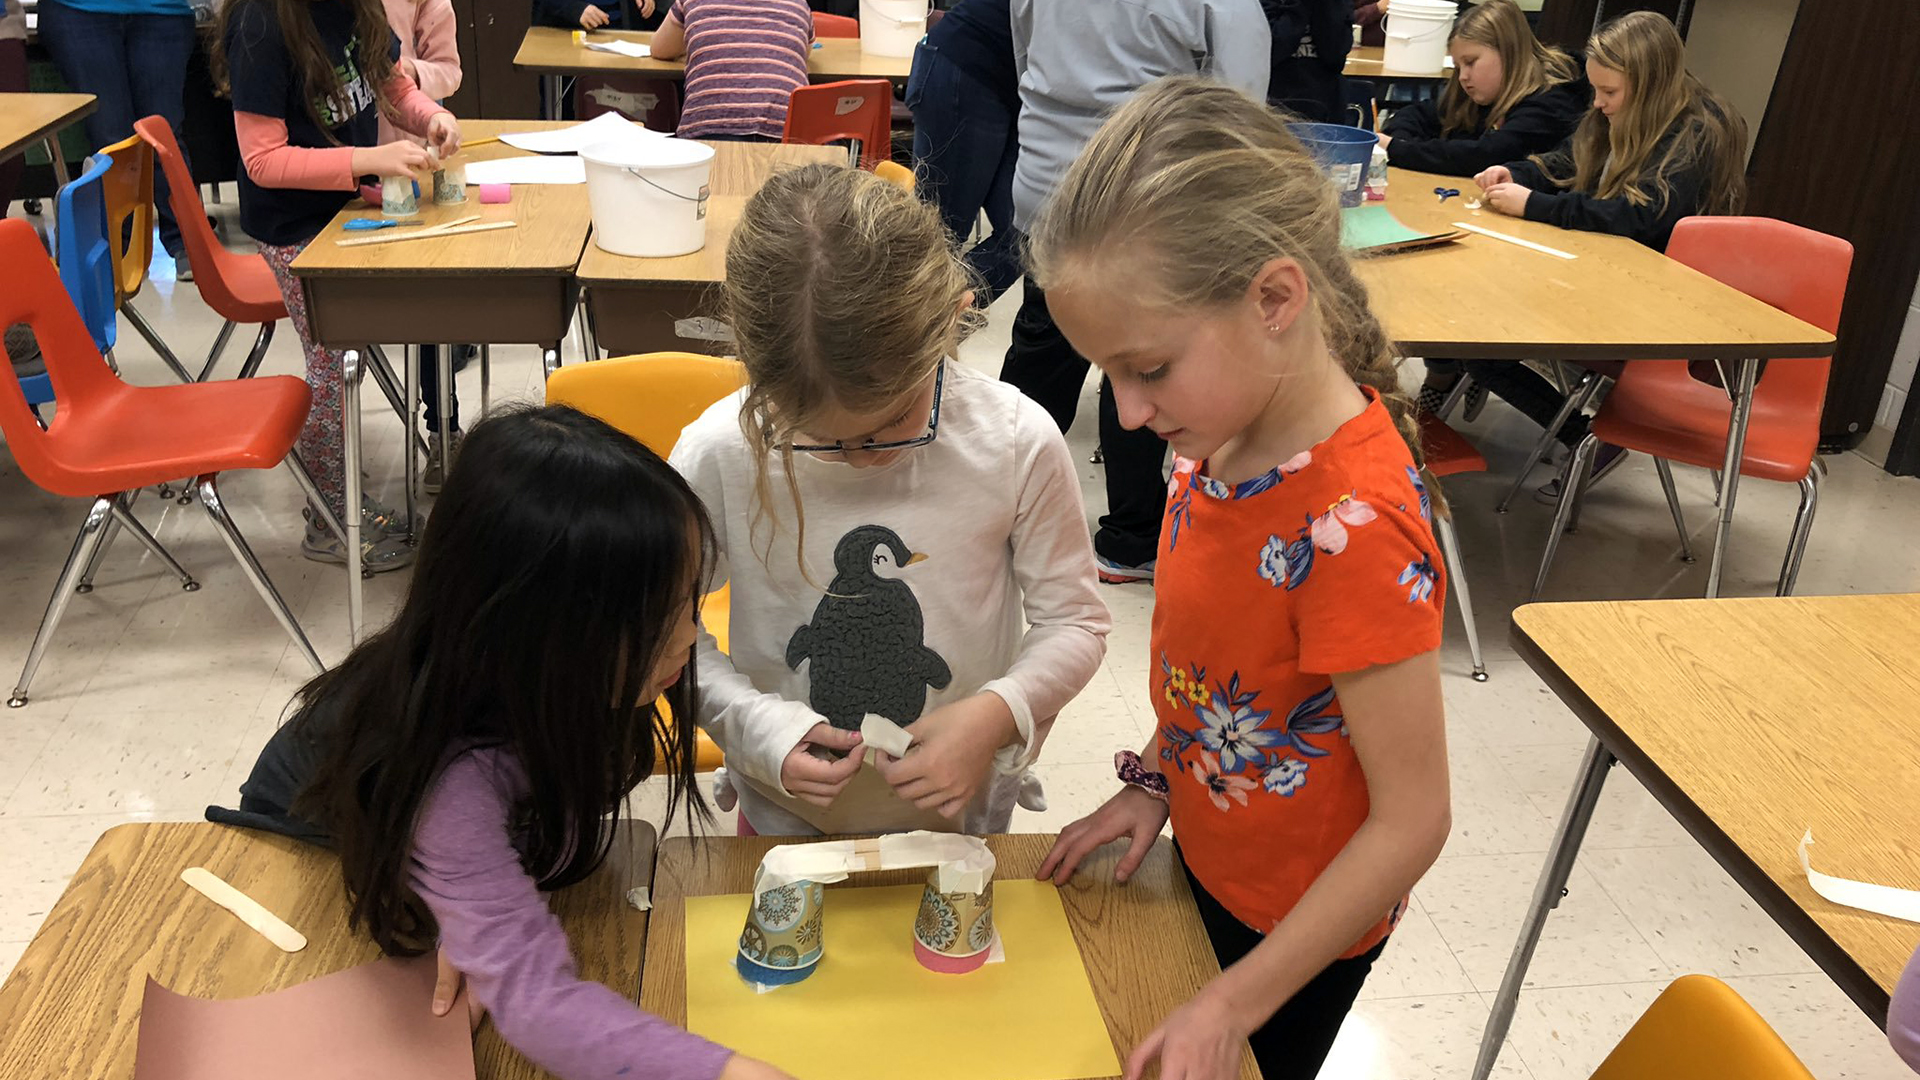 three girls working on a project together in the classroom